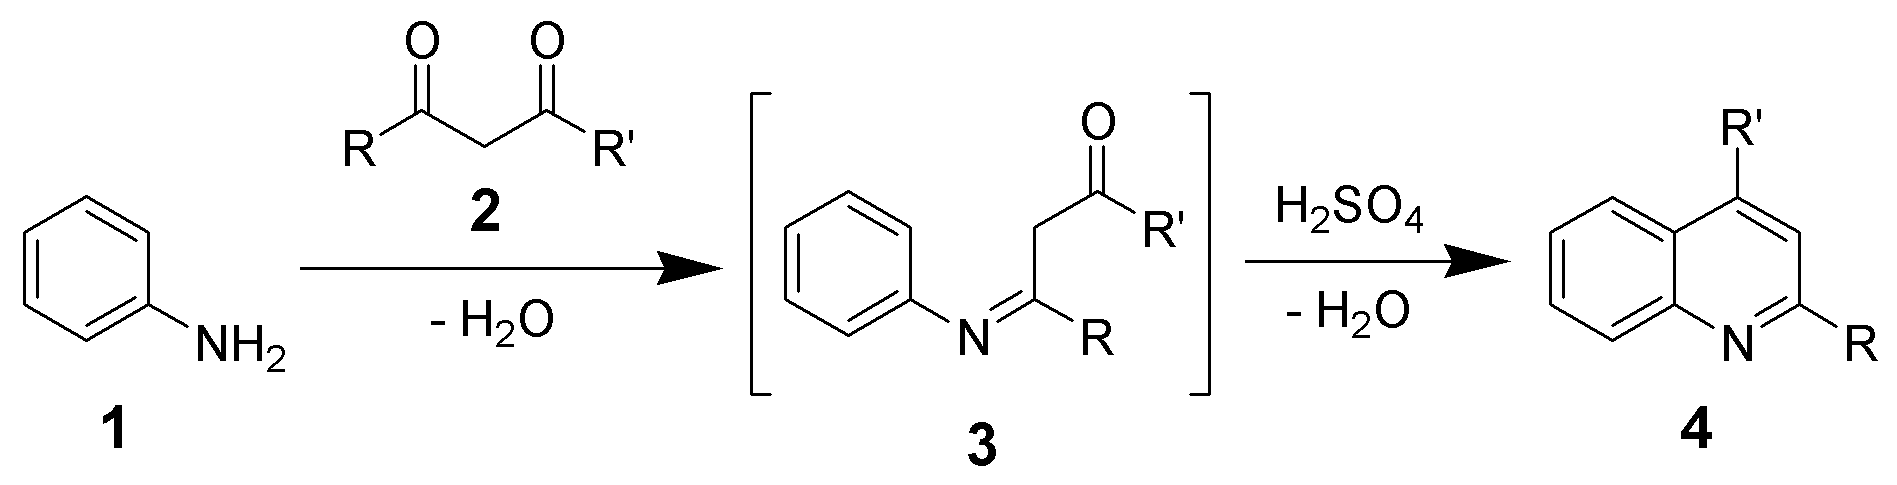 This shows the reaction for the synthesis of the Quinoline Ring, indicating the structure with the lowest potential energy and thus the most stability.